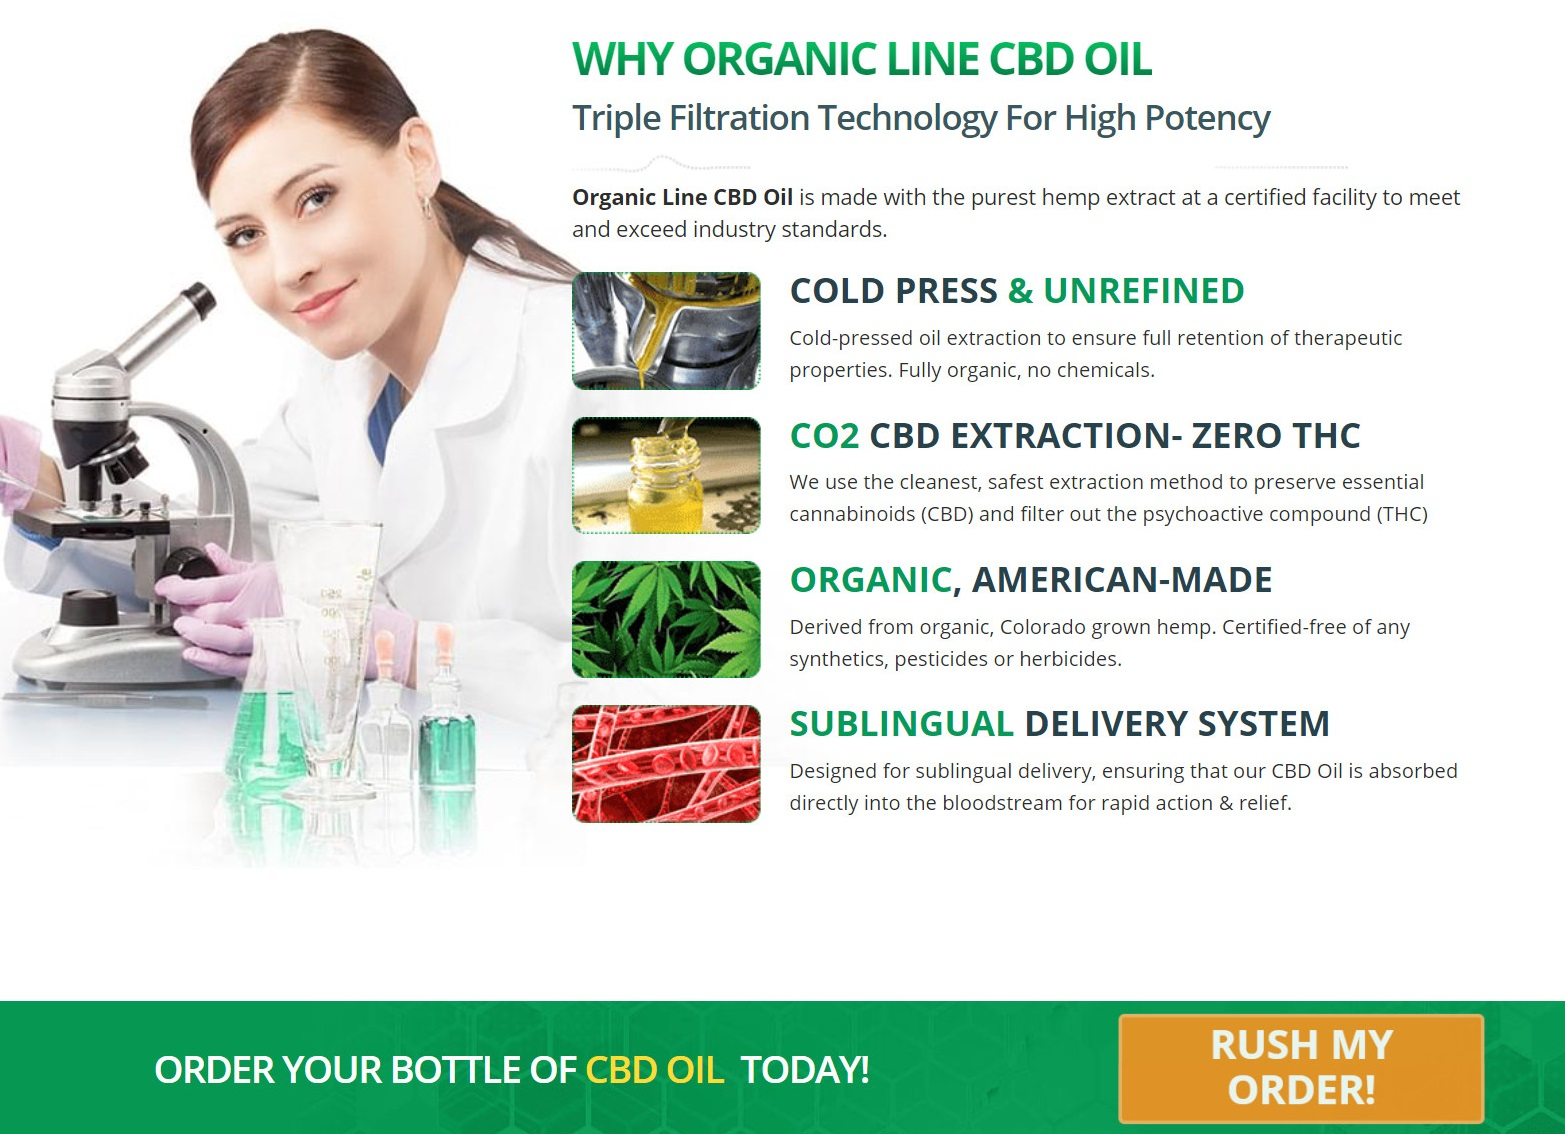 Organic Line CBD Oil Introduction